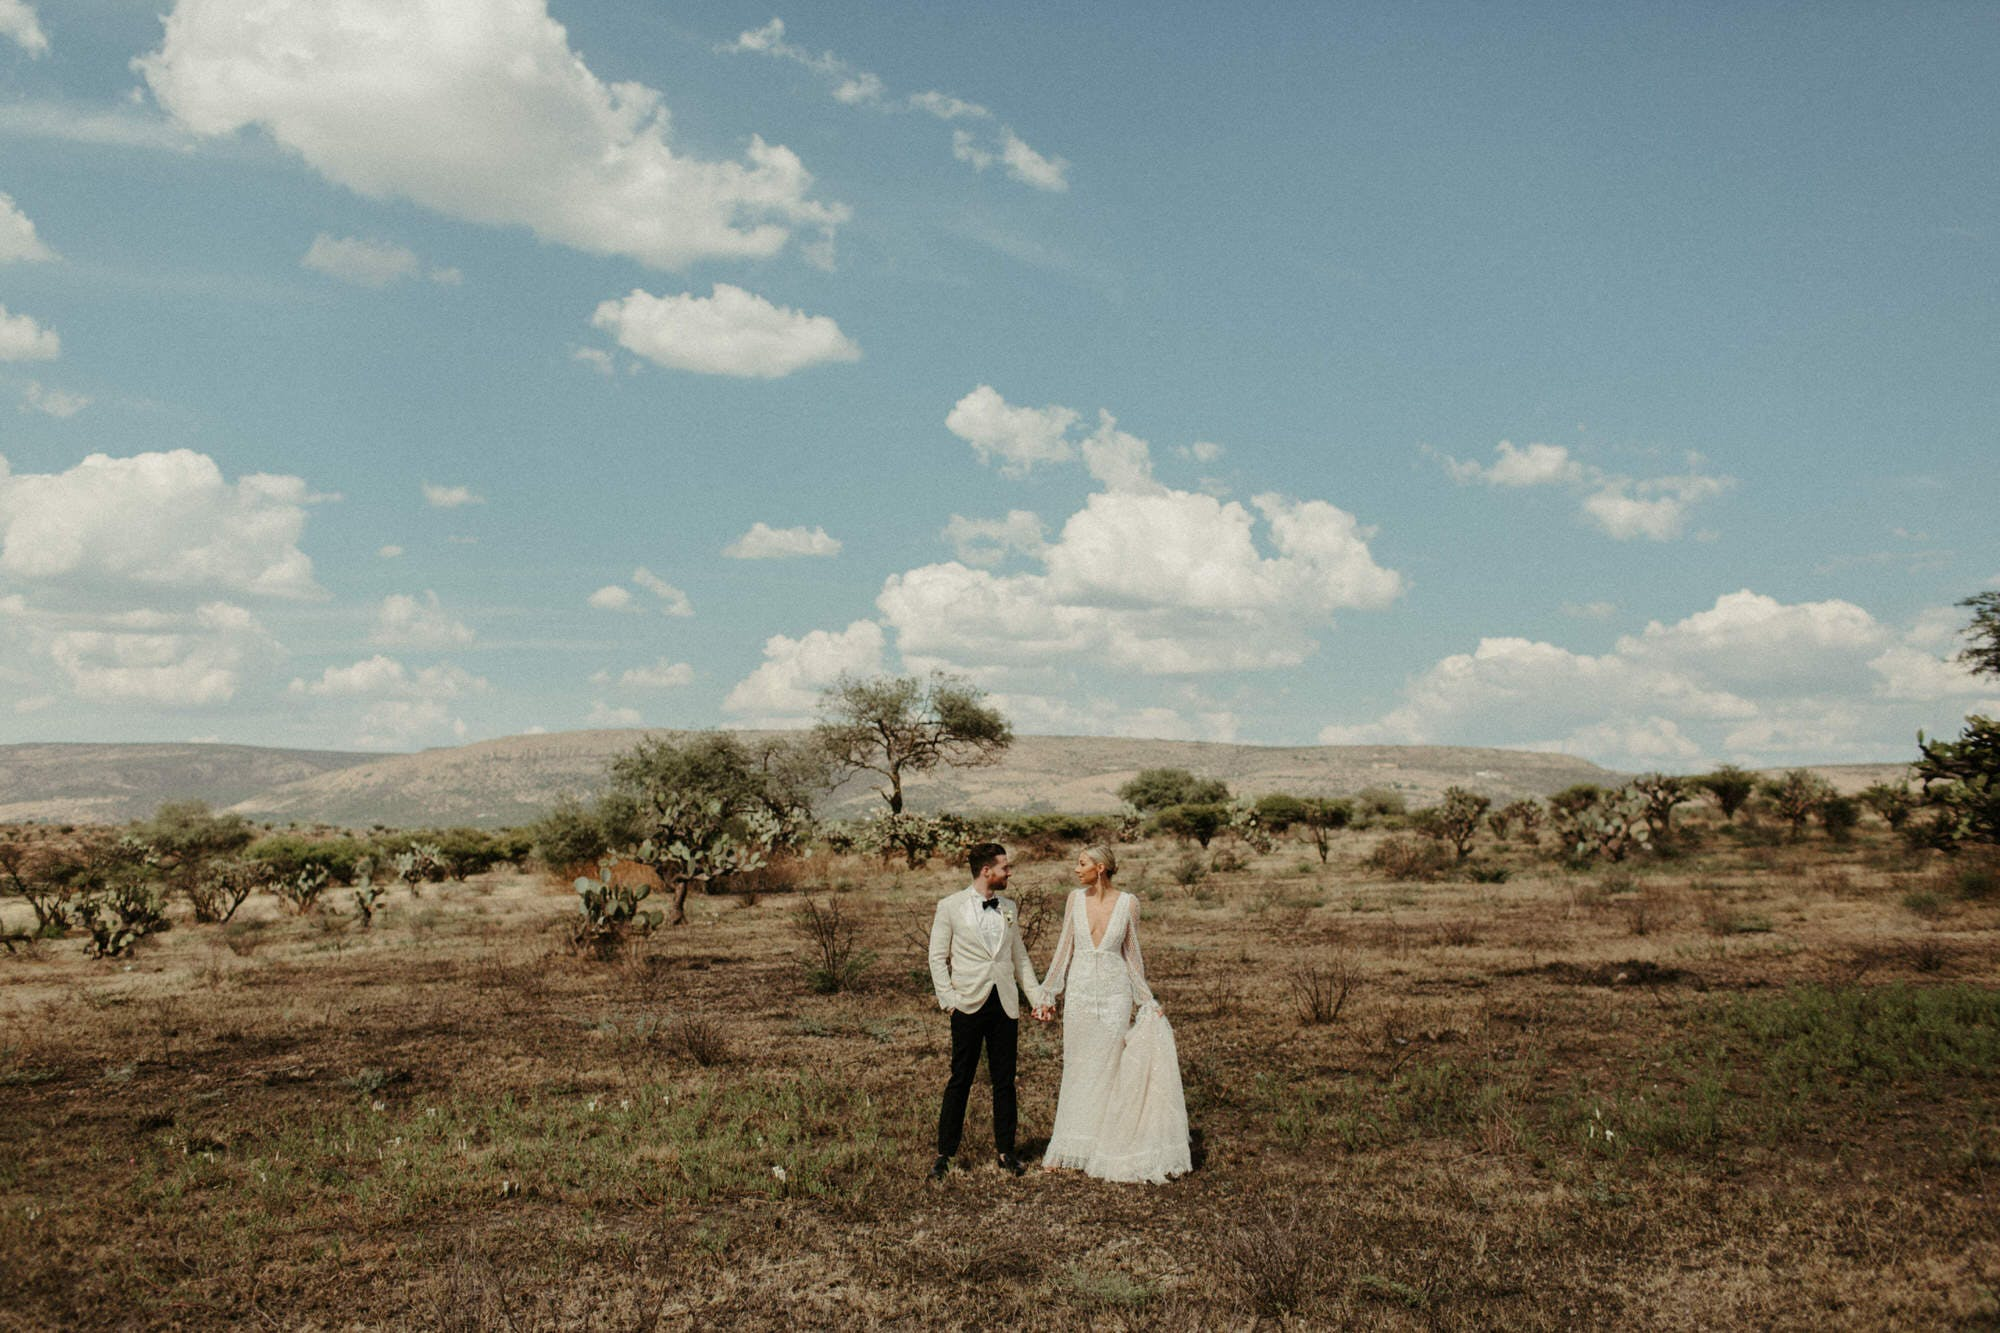 cinematic style wedding photographer